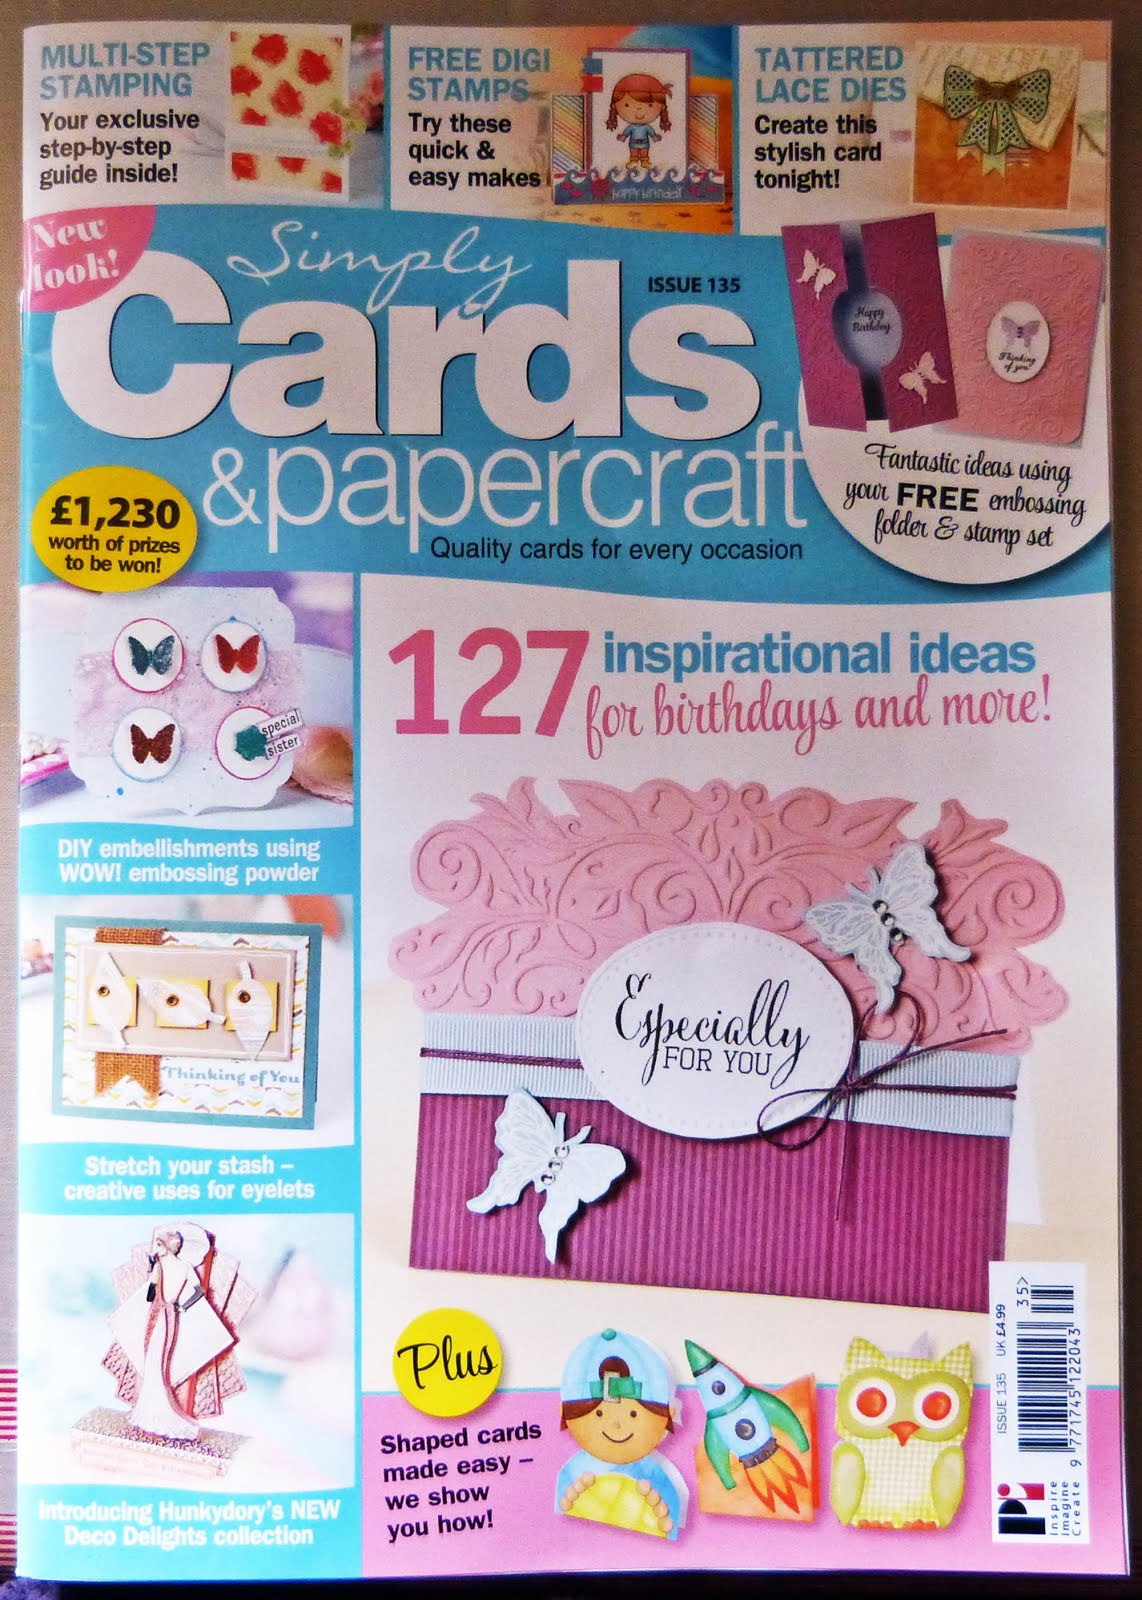 Published Simply Cards & PaperCrafts 135